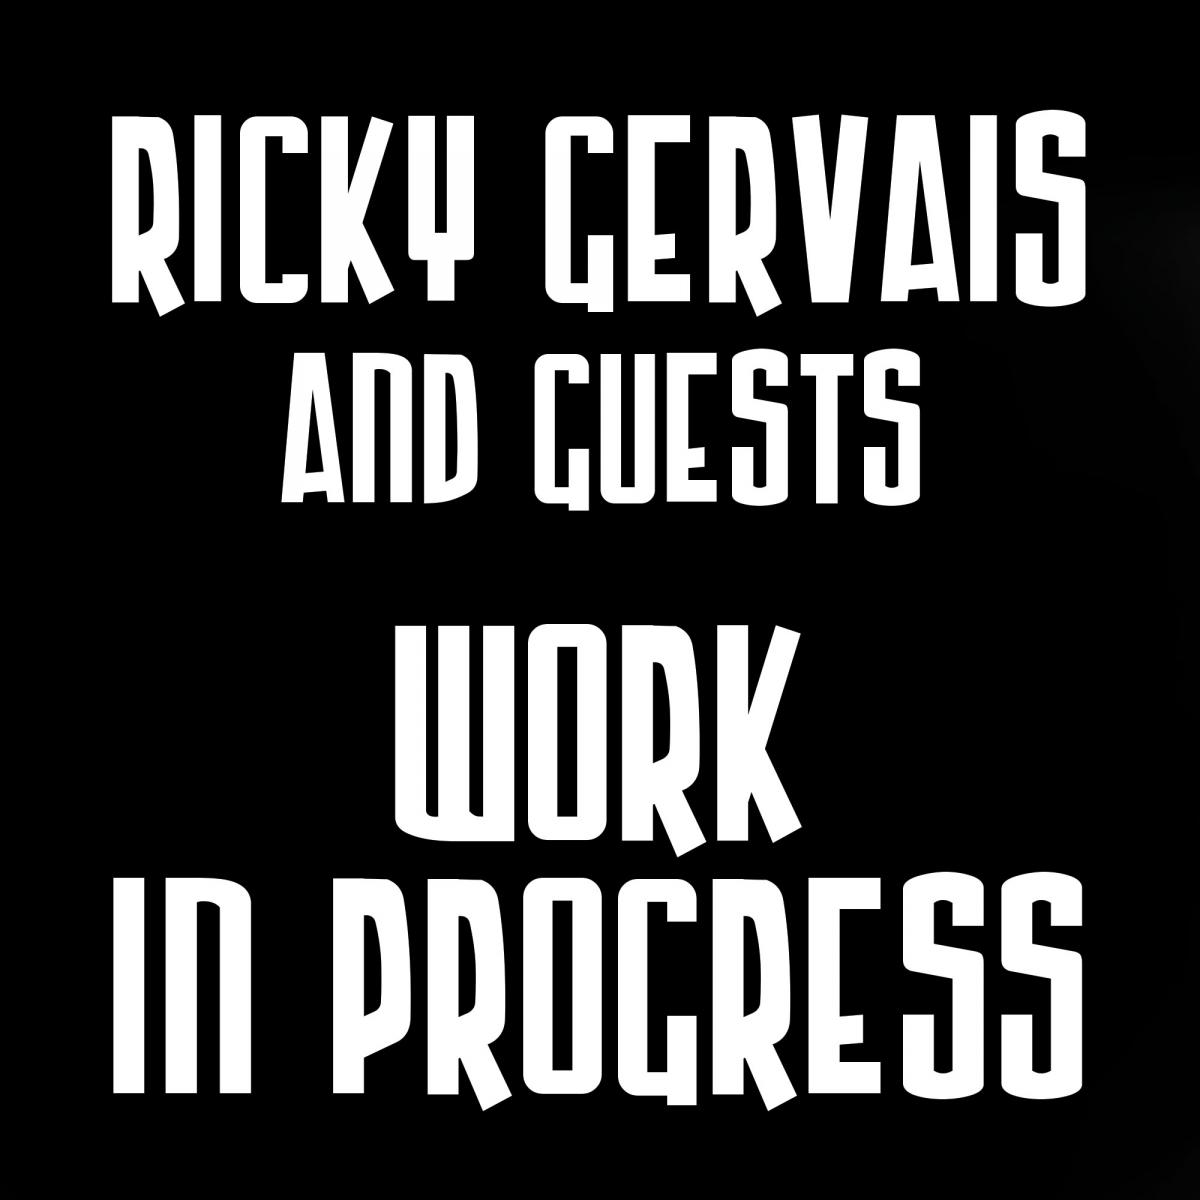 Ricky Gervais & Guests - Work in Progress